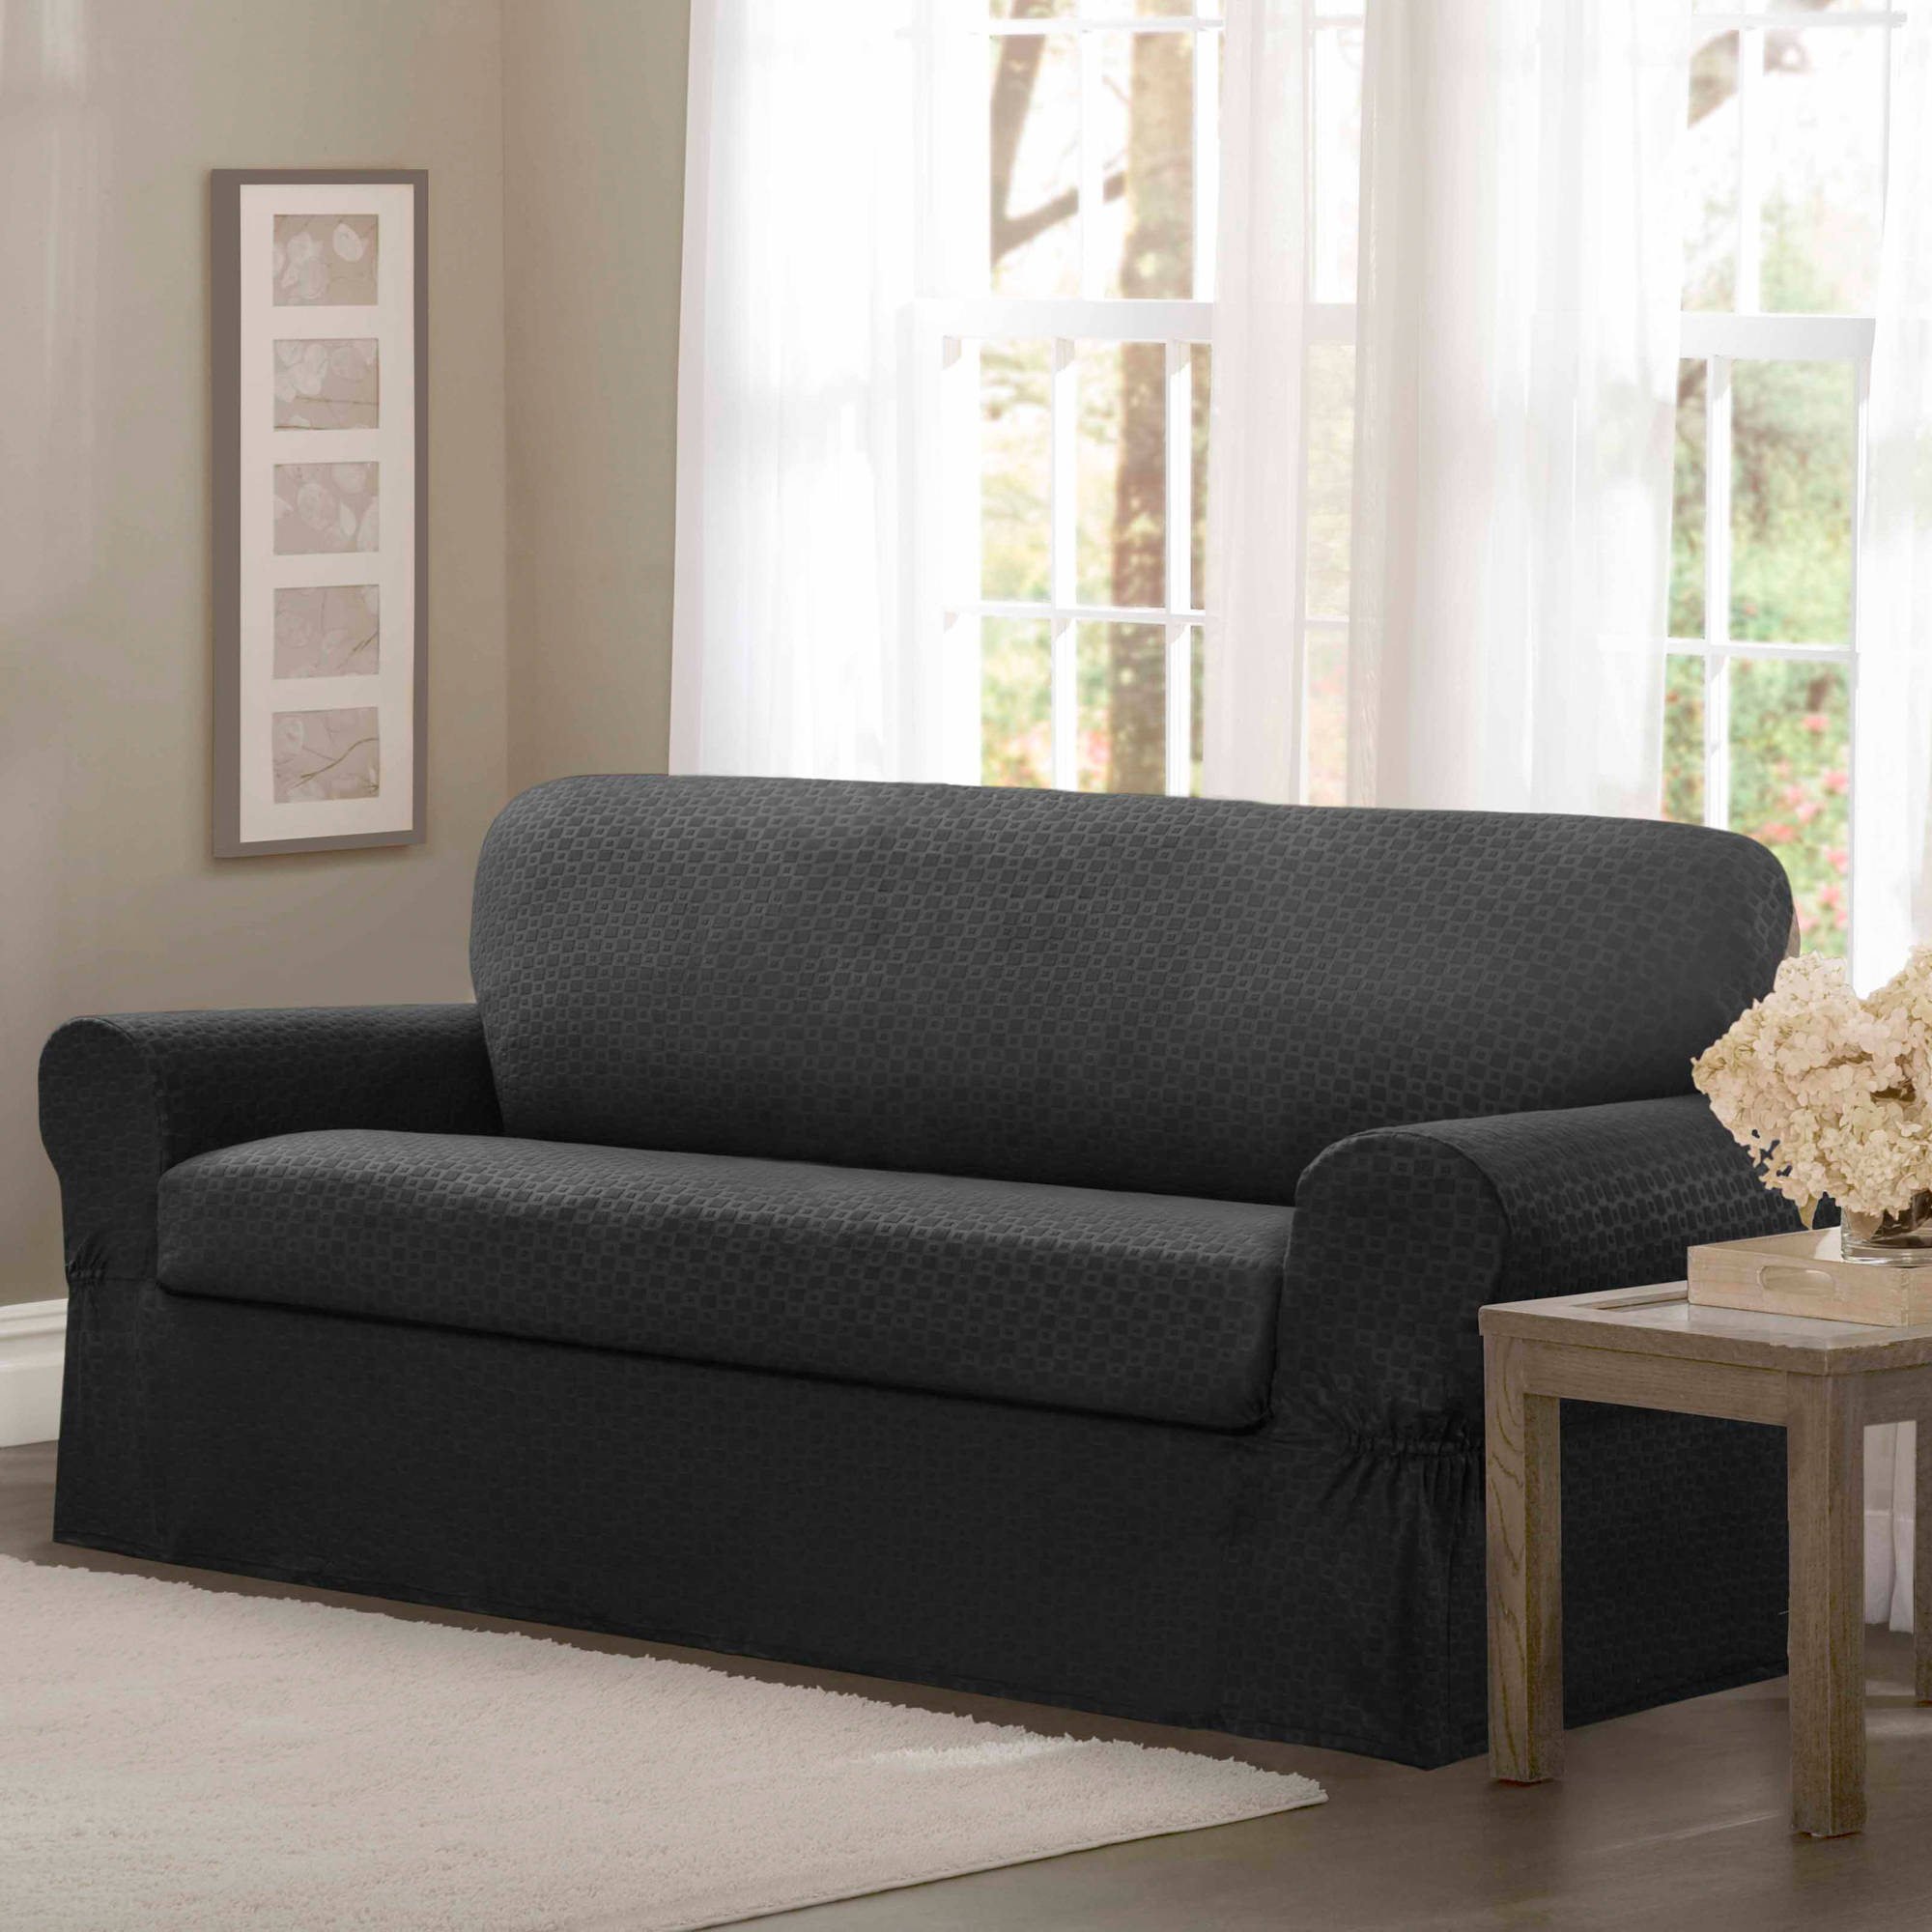 Maytex Conrad Stretch 2 Piece Furniture Slipcover Walmart